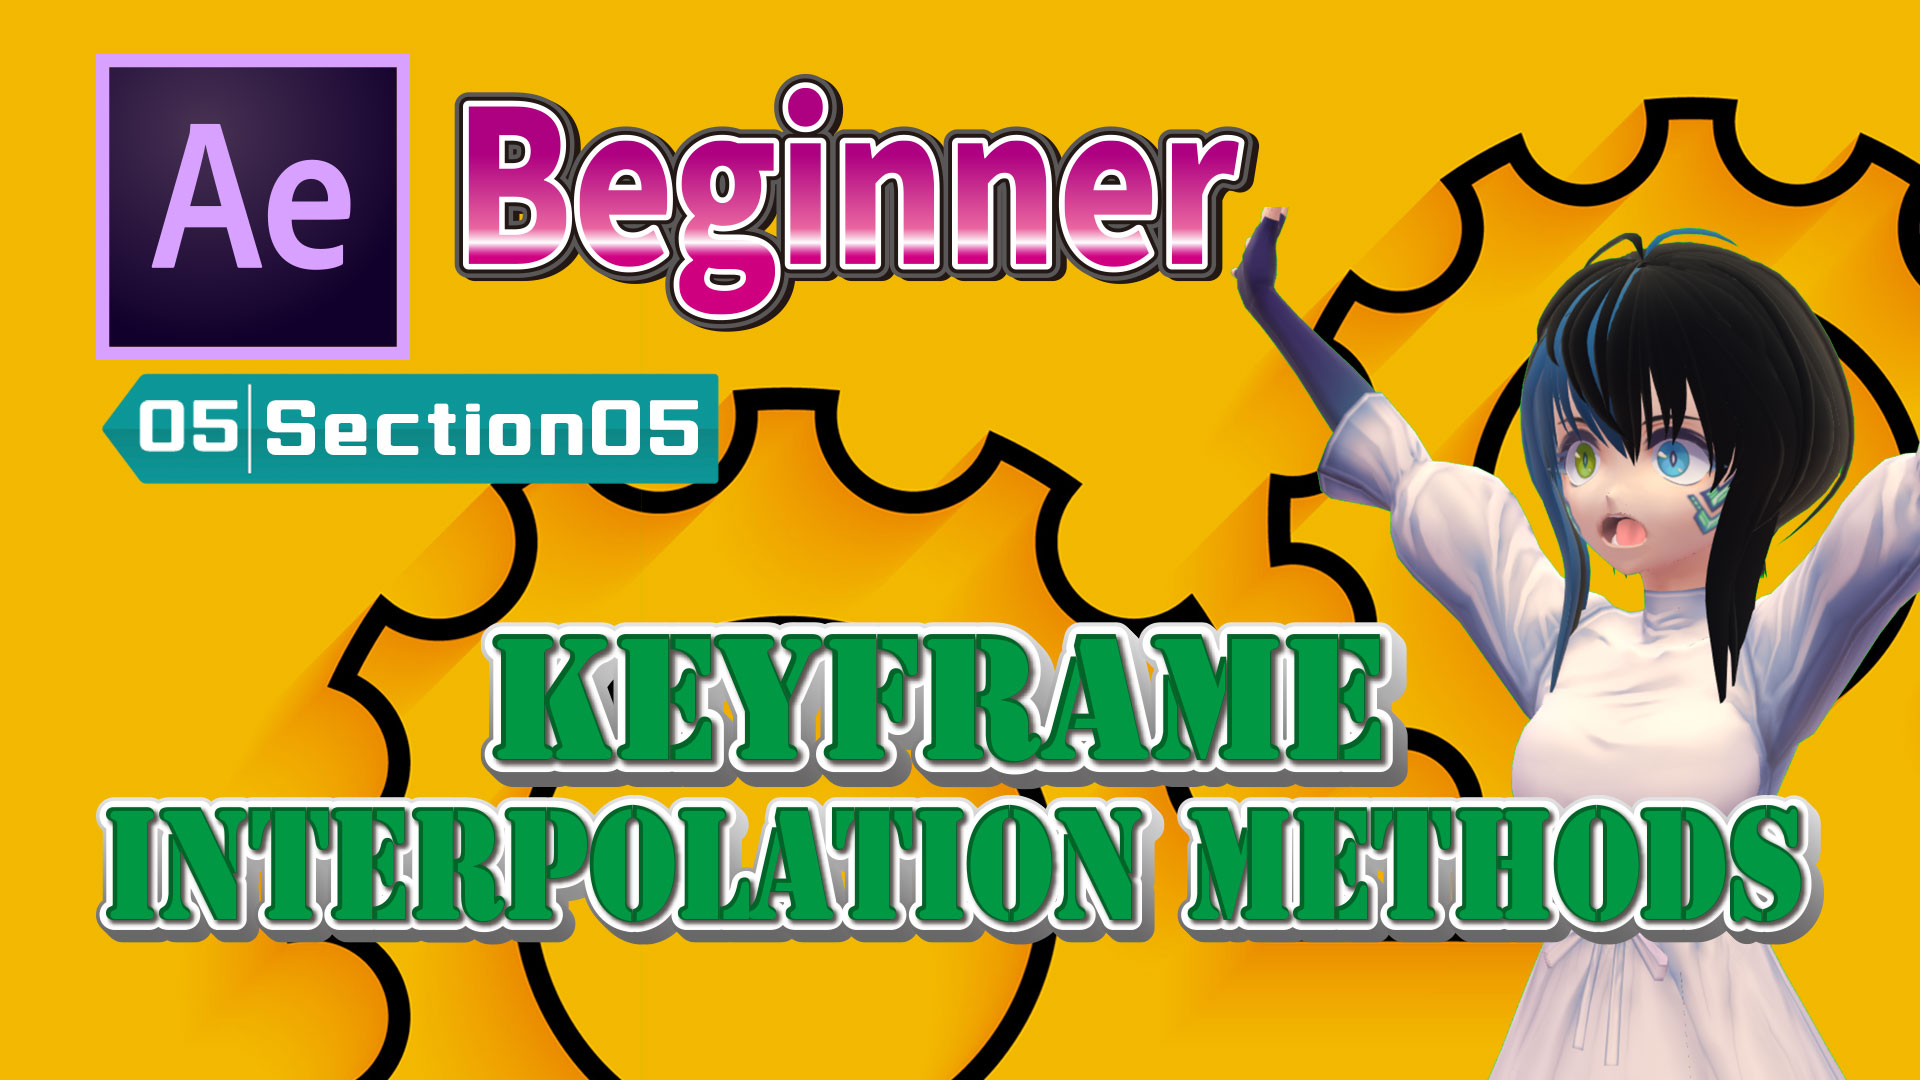 KEYFRAME INTERPOLATION METHODS